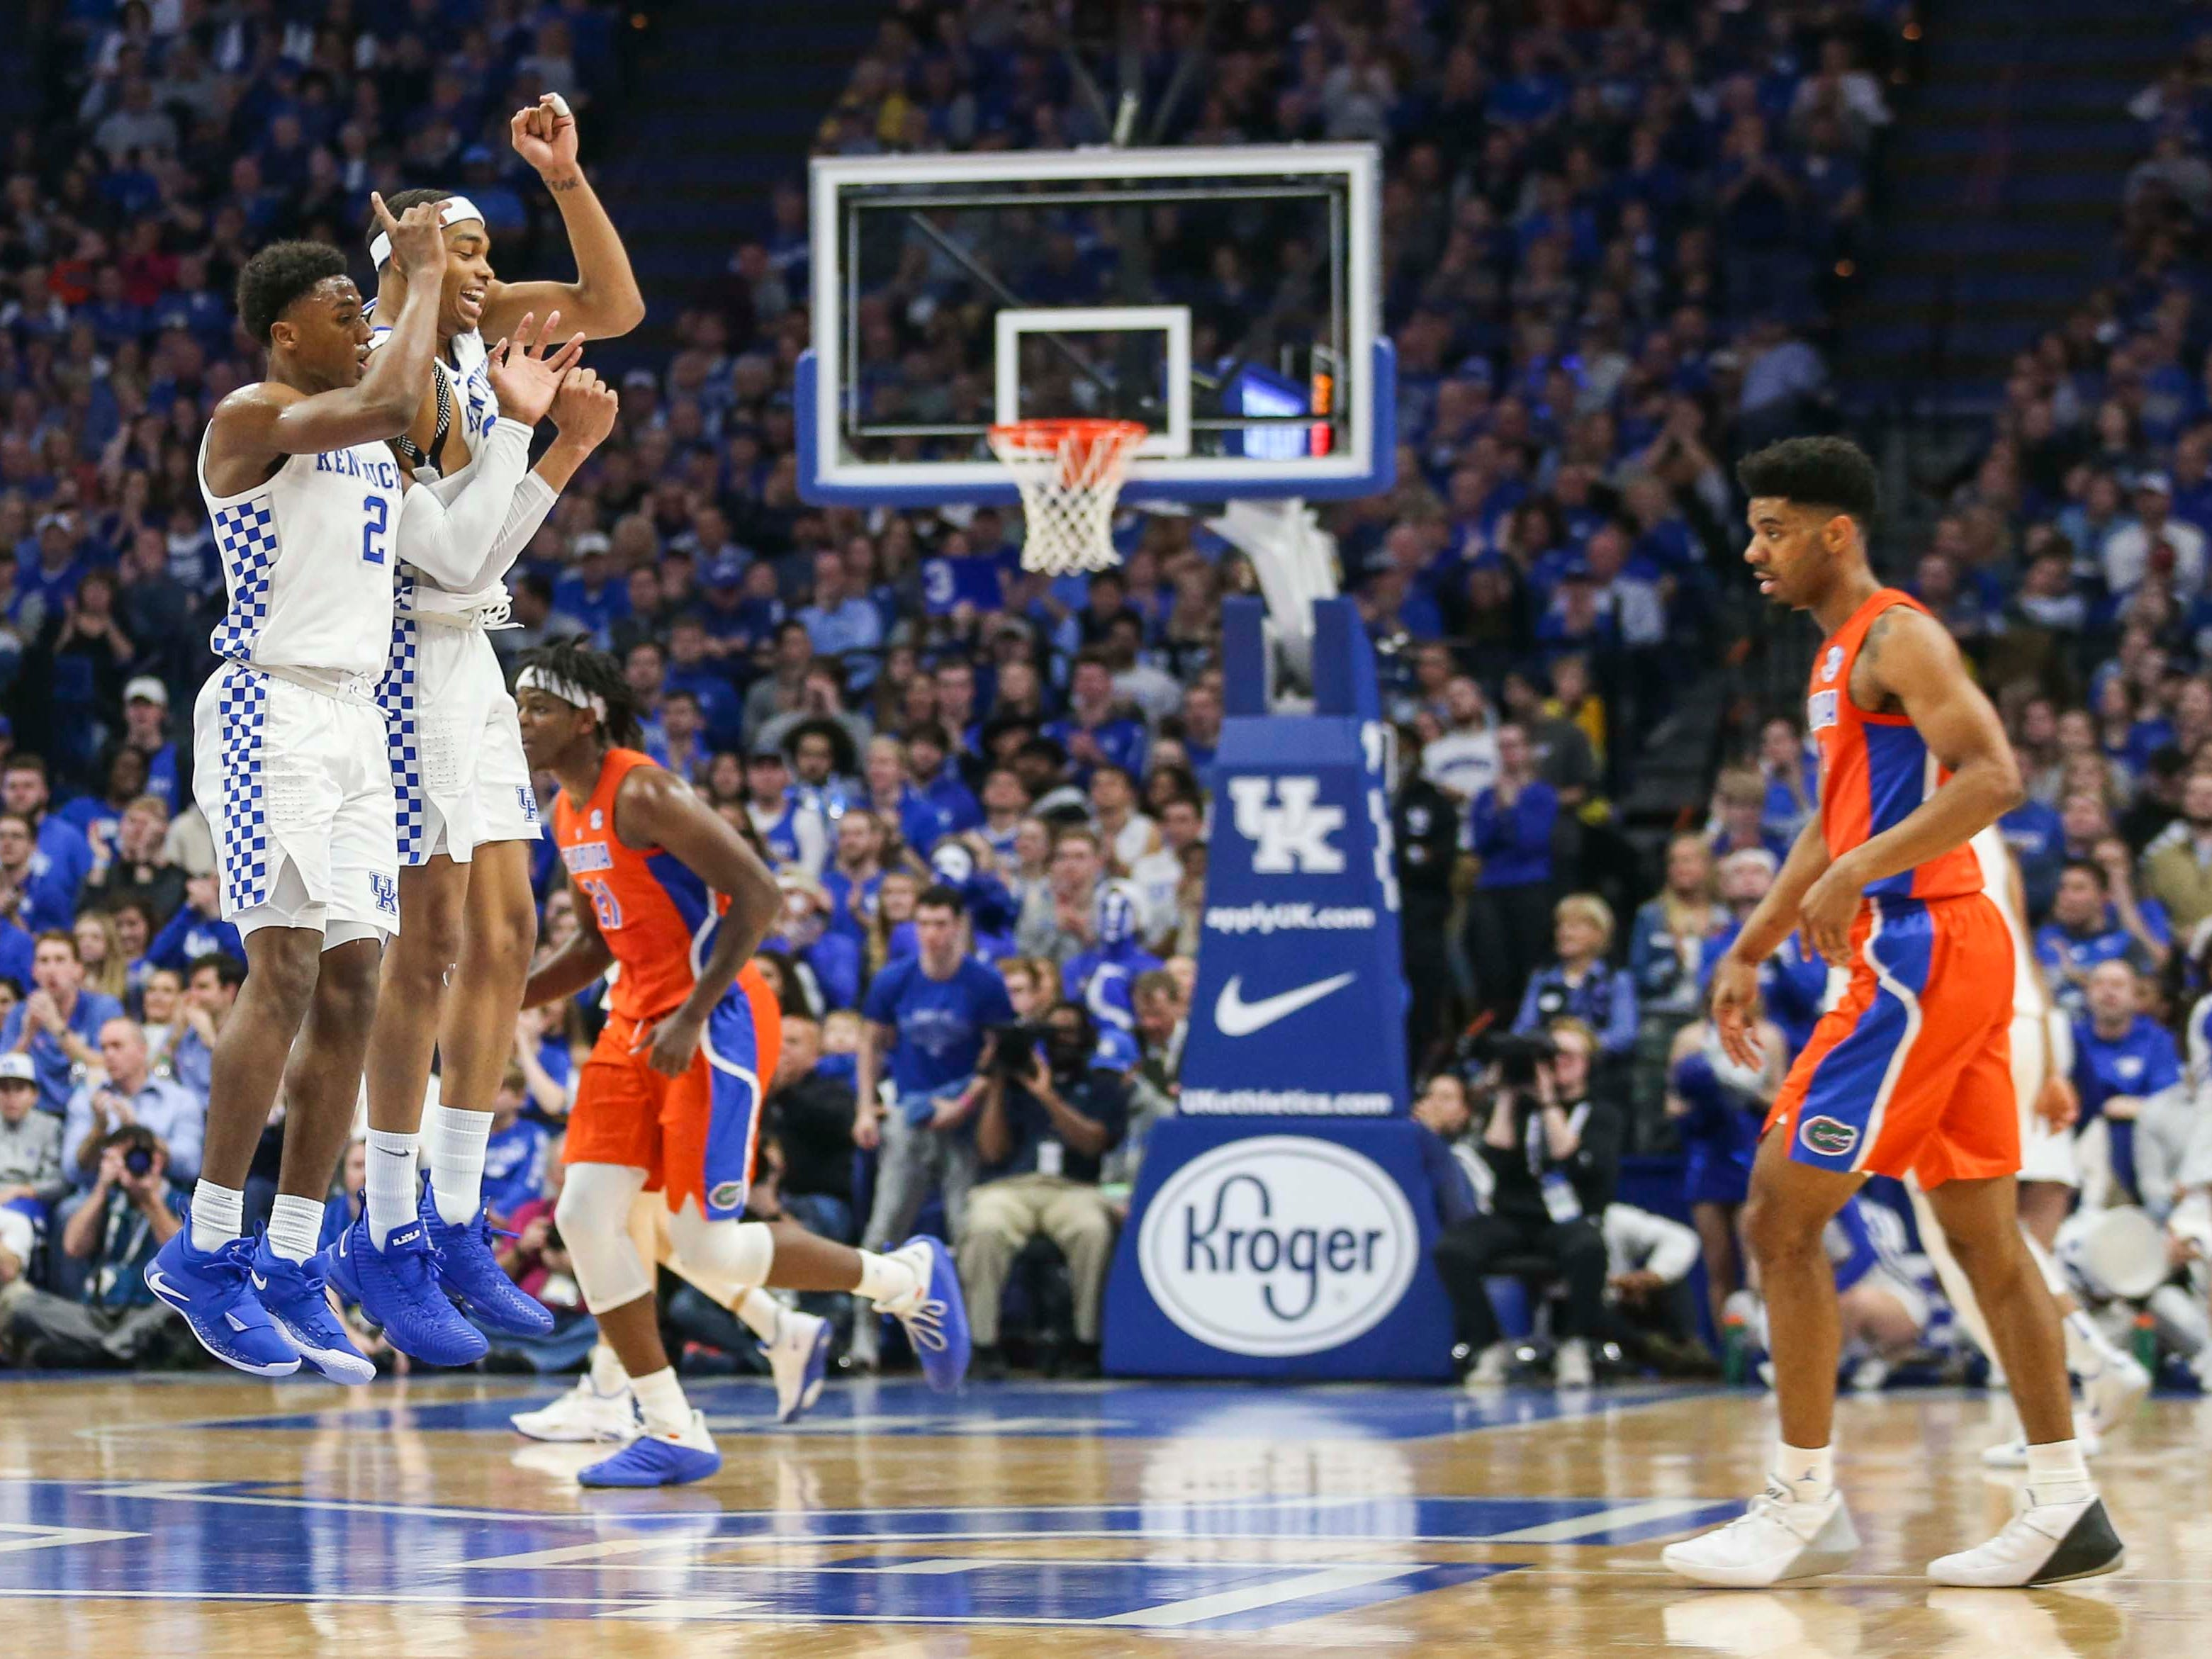 Kentucky's Ashton Hagans and PJ Washington Jr celebrate after Hagan's fast break two points against Florida in the first half. March 9, 2019